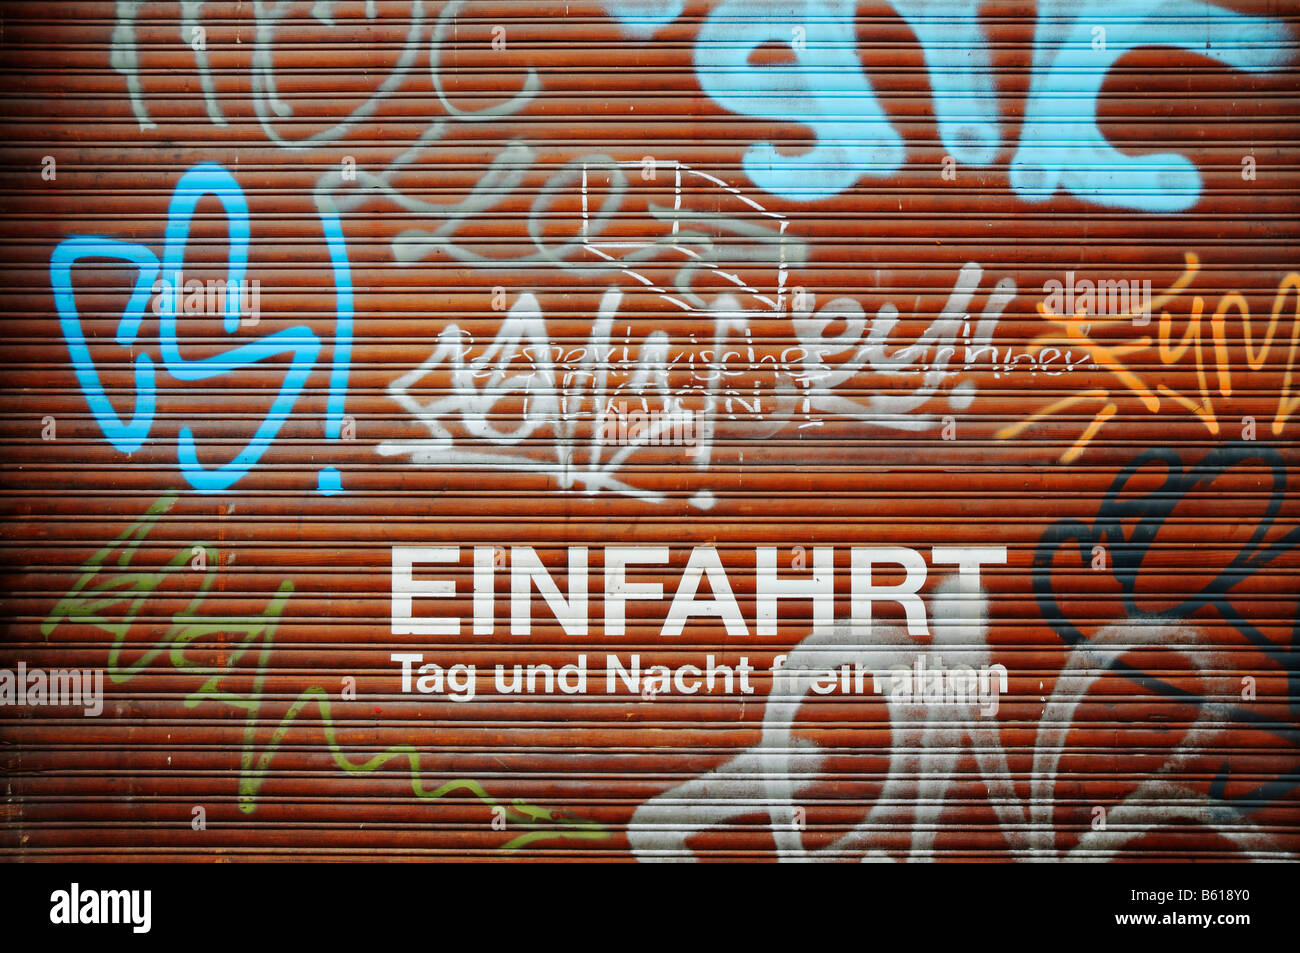 Roller shutter, keep free day and night, graffiti - Stock Image